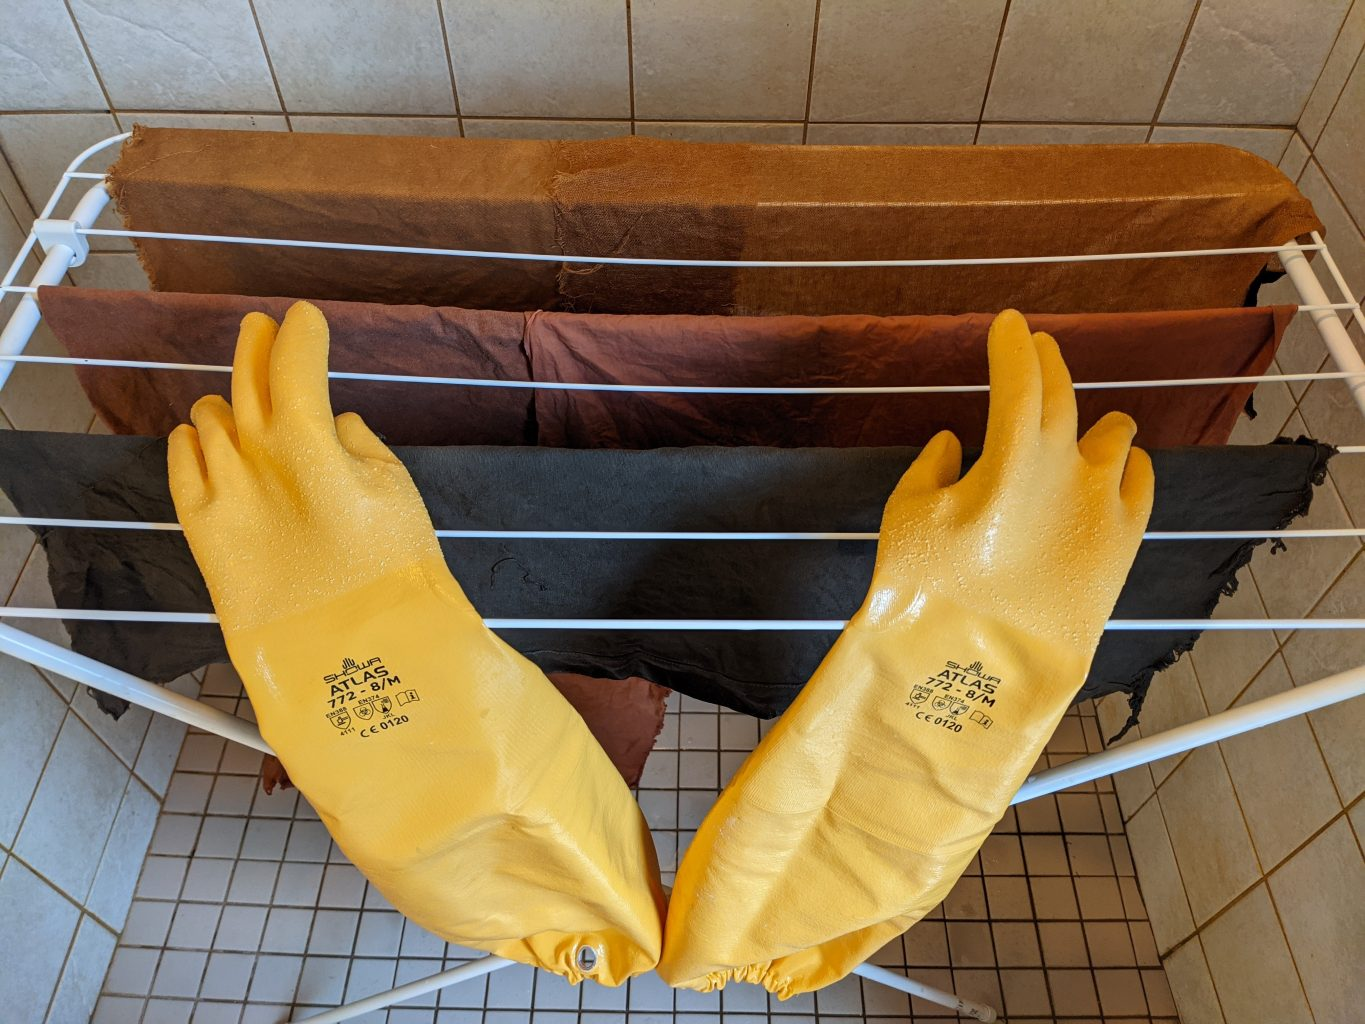 Clothes airer in a white tiled space, with three pieces of natural dyed fabric - dark blue, red and brown - hanging on it, with a large pair of yellow rubber gloves in the foreground